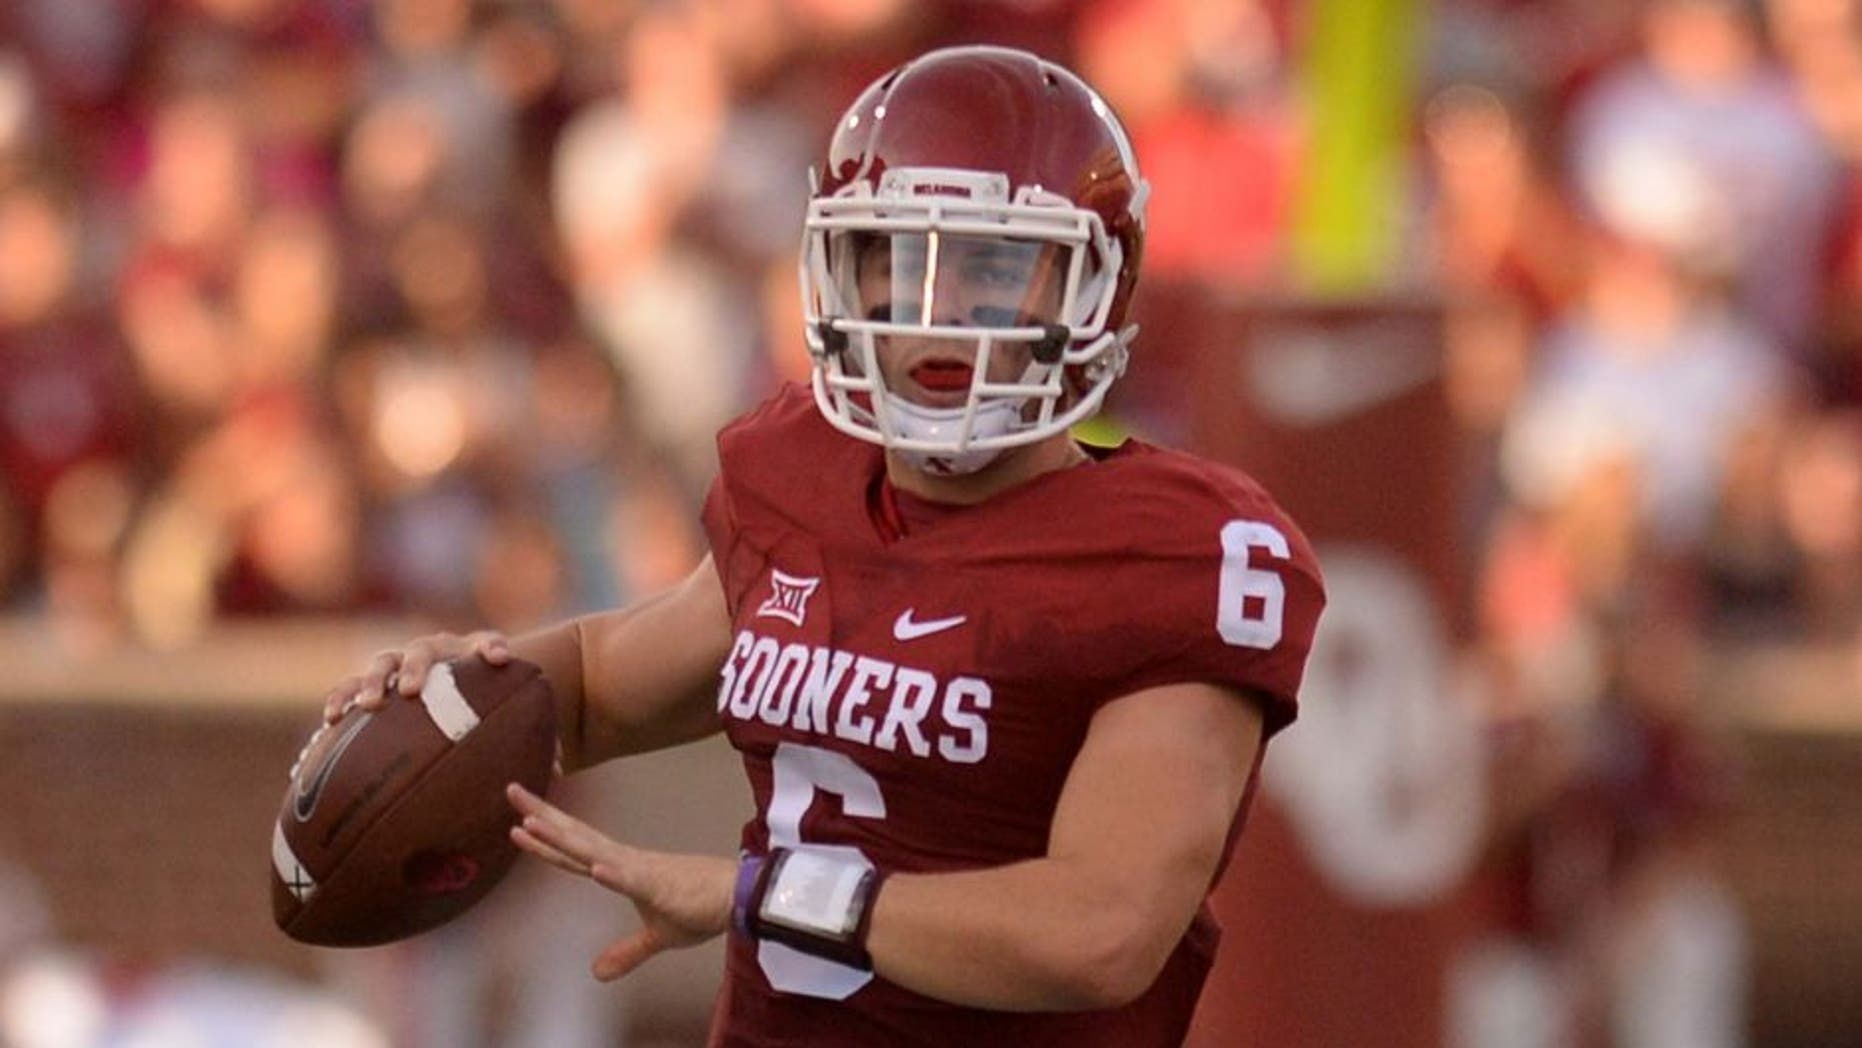 Sep 5, 2015; Norman, OK, USA; Oklahoma Sooners quarterback Baker Mayfield (6) runs with the ball while being pursued by Oklahoma Sooners linebacker Tay Evans (9) during the first quarter at Gaylord Family - Oklahoma Memorial Stadium. Mandatory Credit: Mark D. Smith-USA TODAY Sports